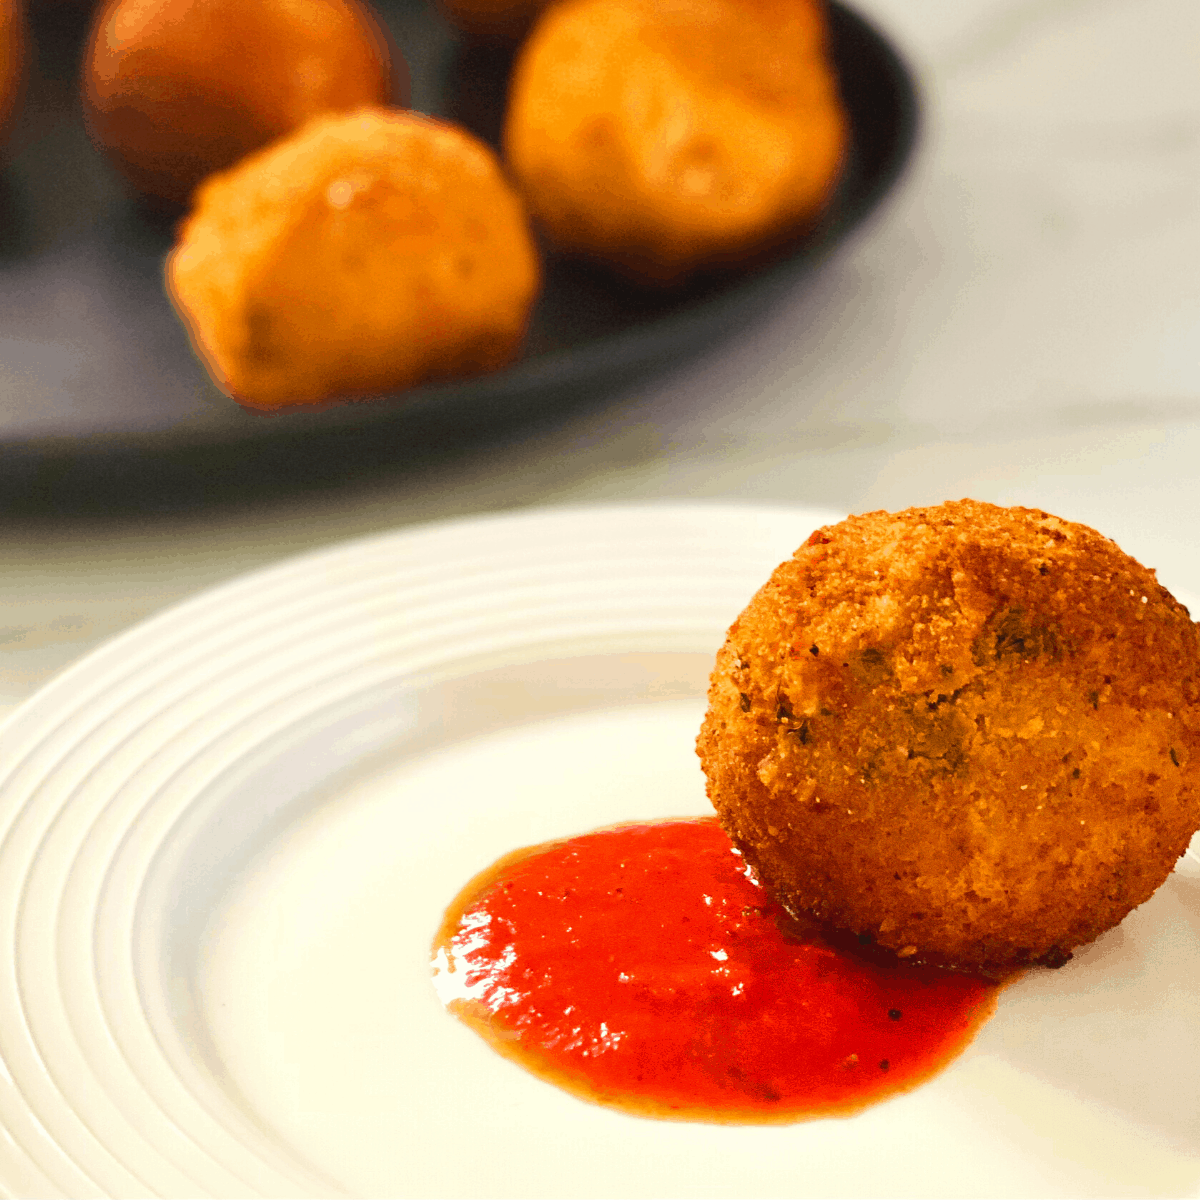 A white plate with a circle of red, marinara sauce in the center, and one fried arancini ball. A black baking pan of arancini in the background.